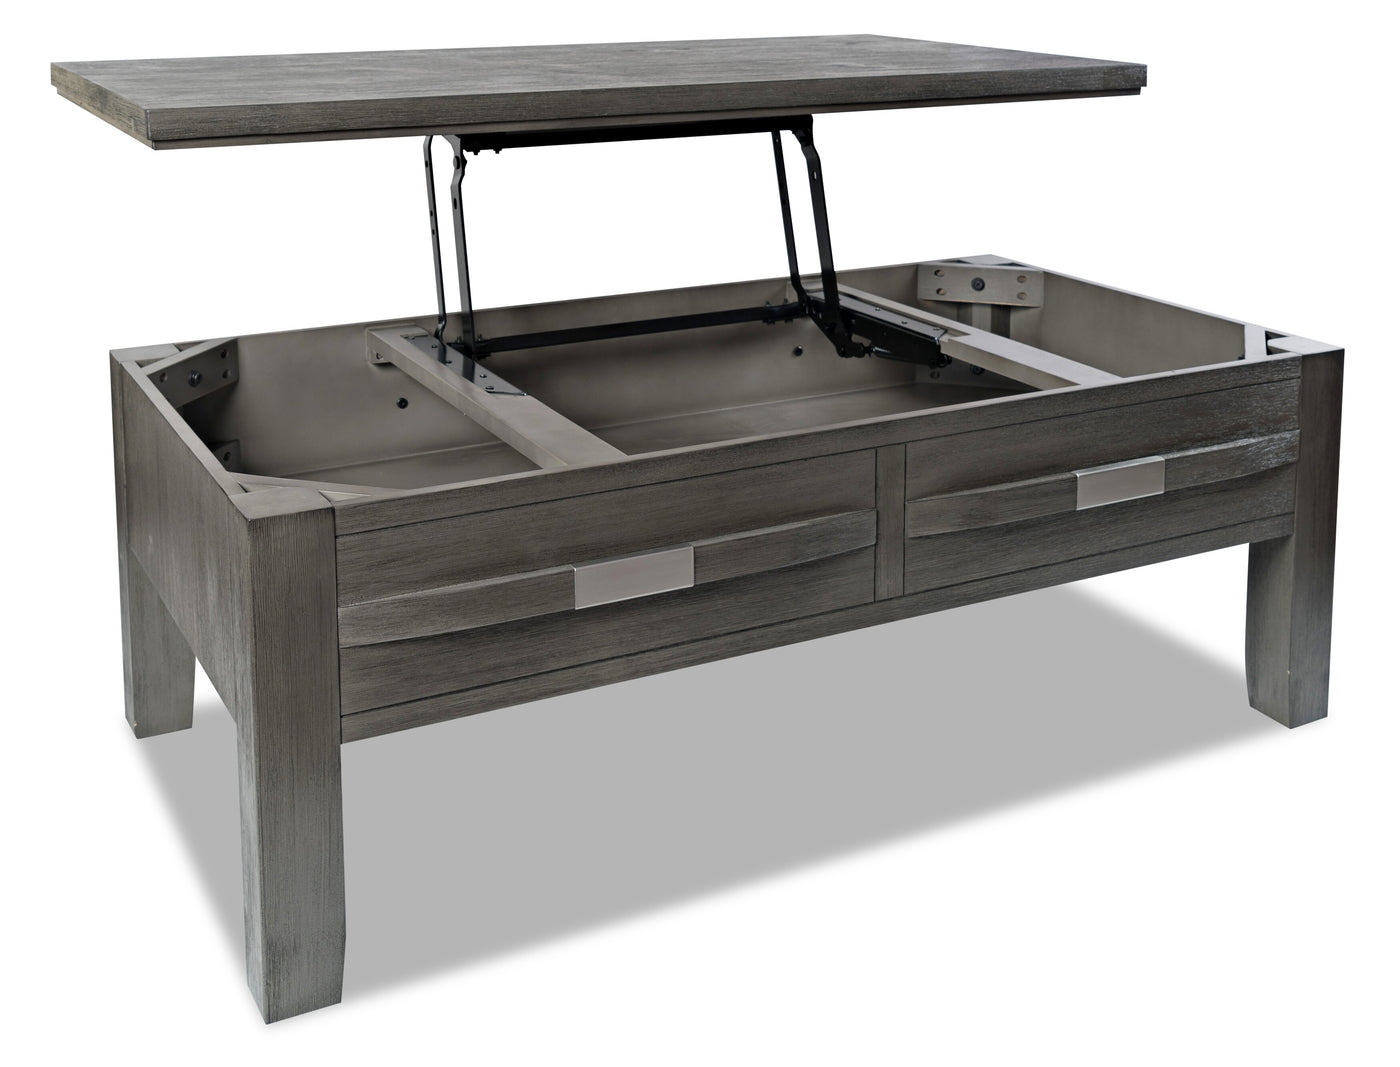 Bronx Coffee Table With Lift Top Grey The Brick [ 1067 x 1400 Pixel ]